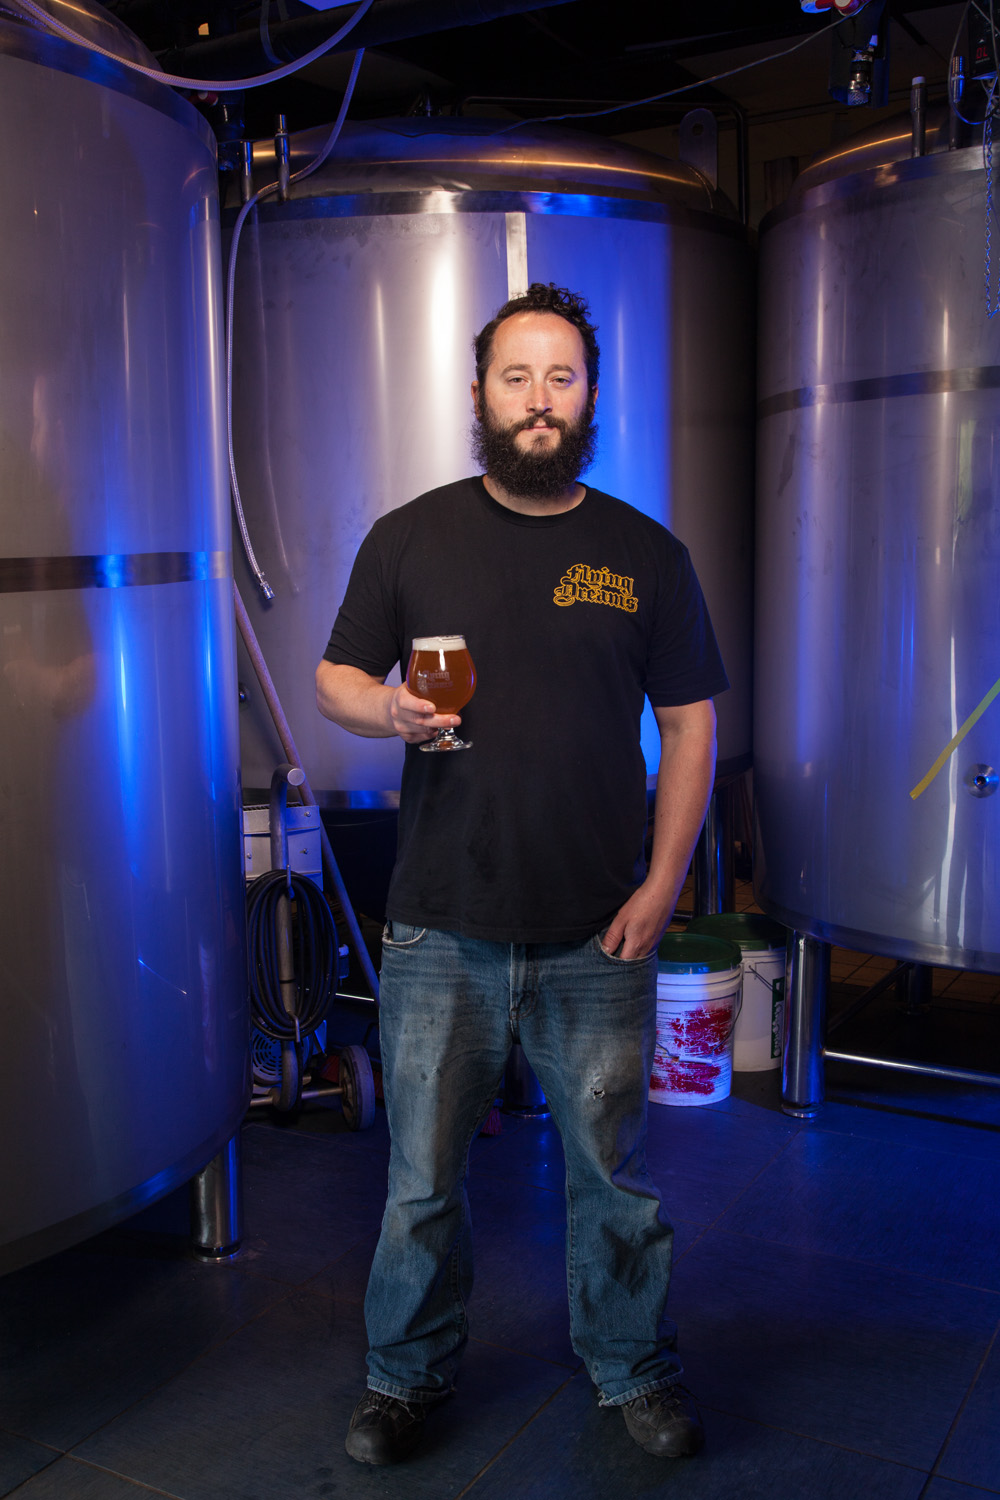 Dave Richardson, Brewmaster Flying Dreams Brewing Co. Worcester, MA Established in 2015